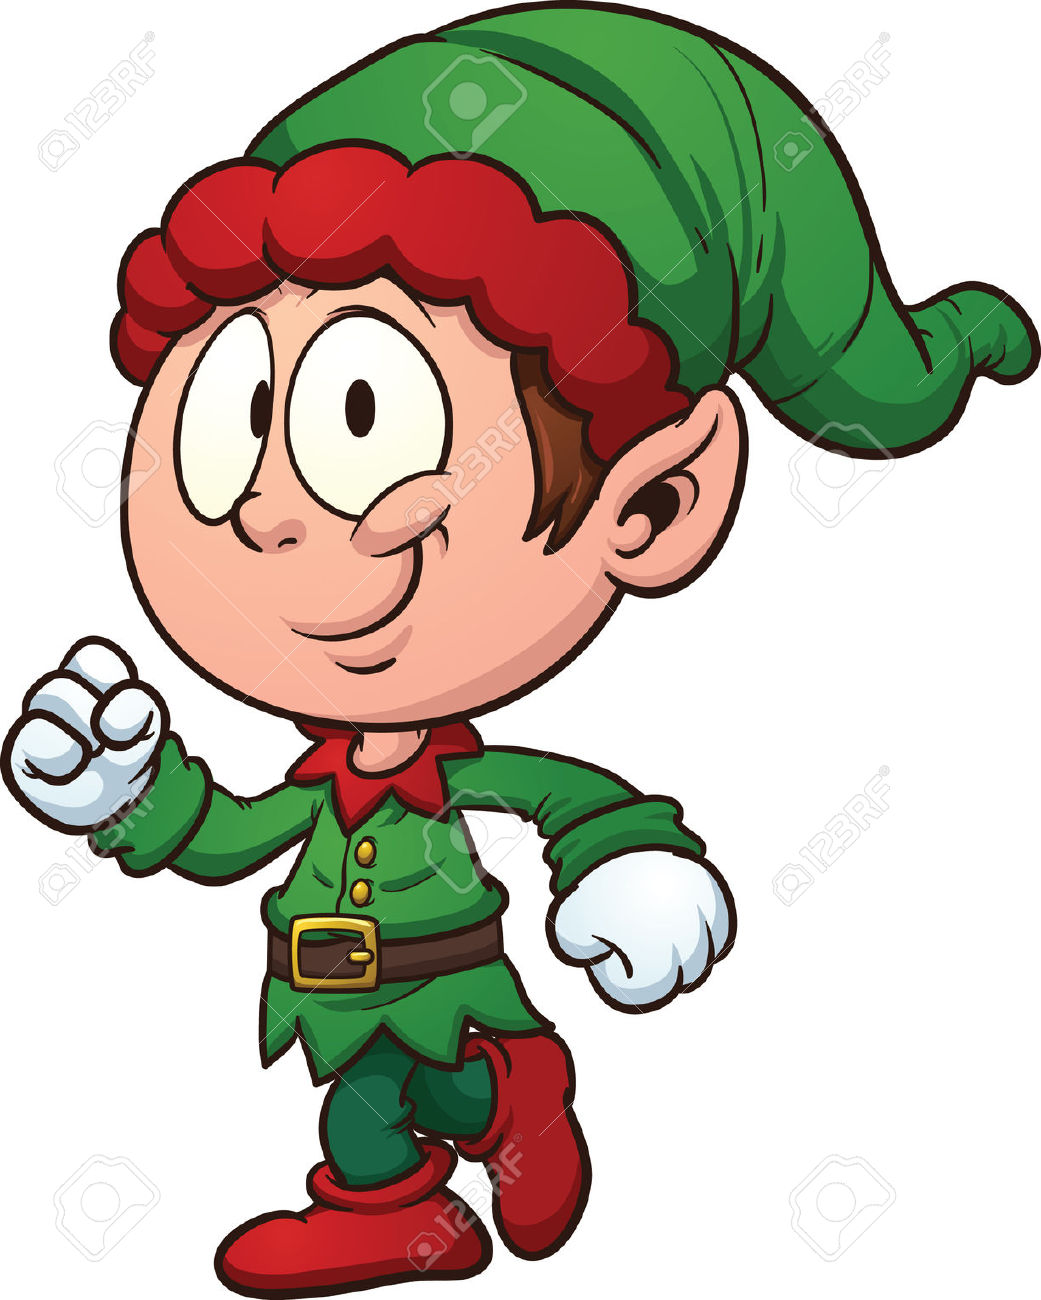 elf movie clipart at getdrawings com free for personal use elf rh getdrawings com clip art elf shoes clipart elephant